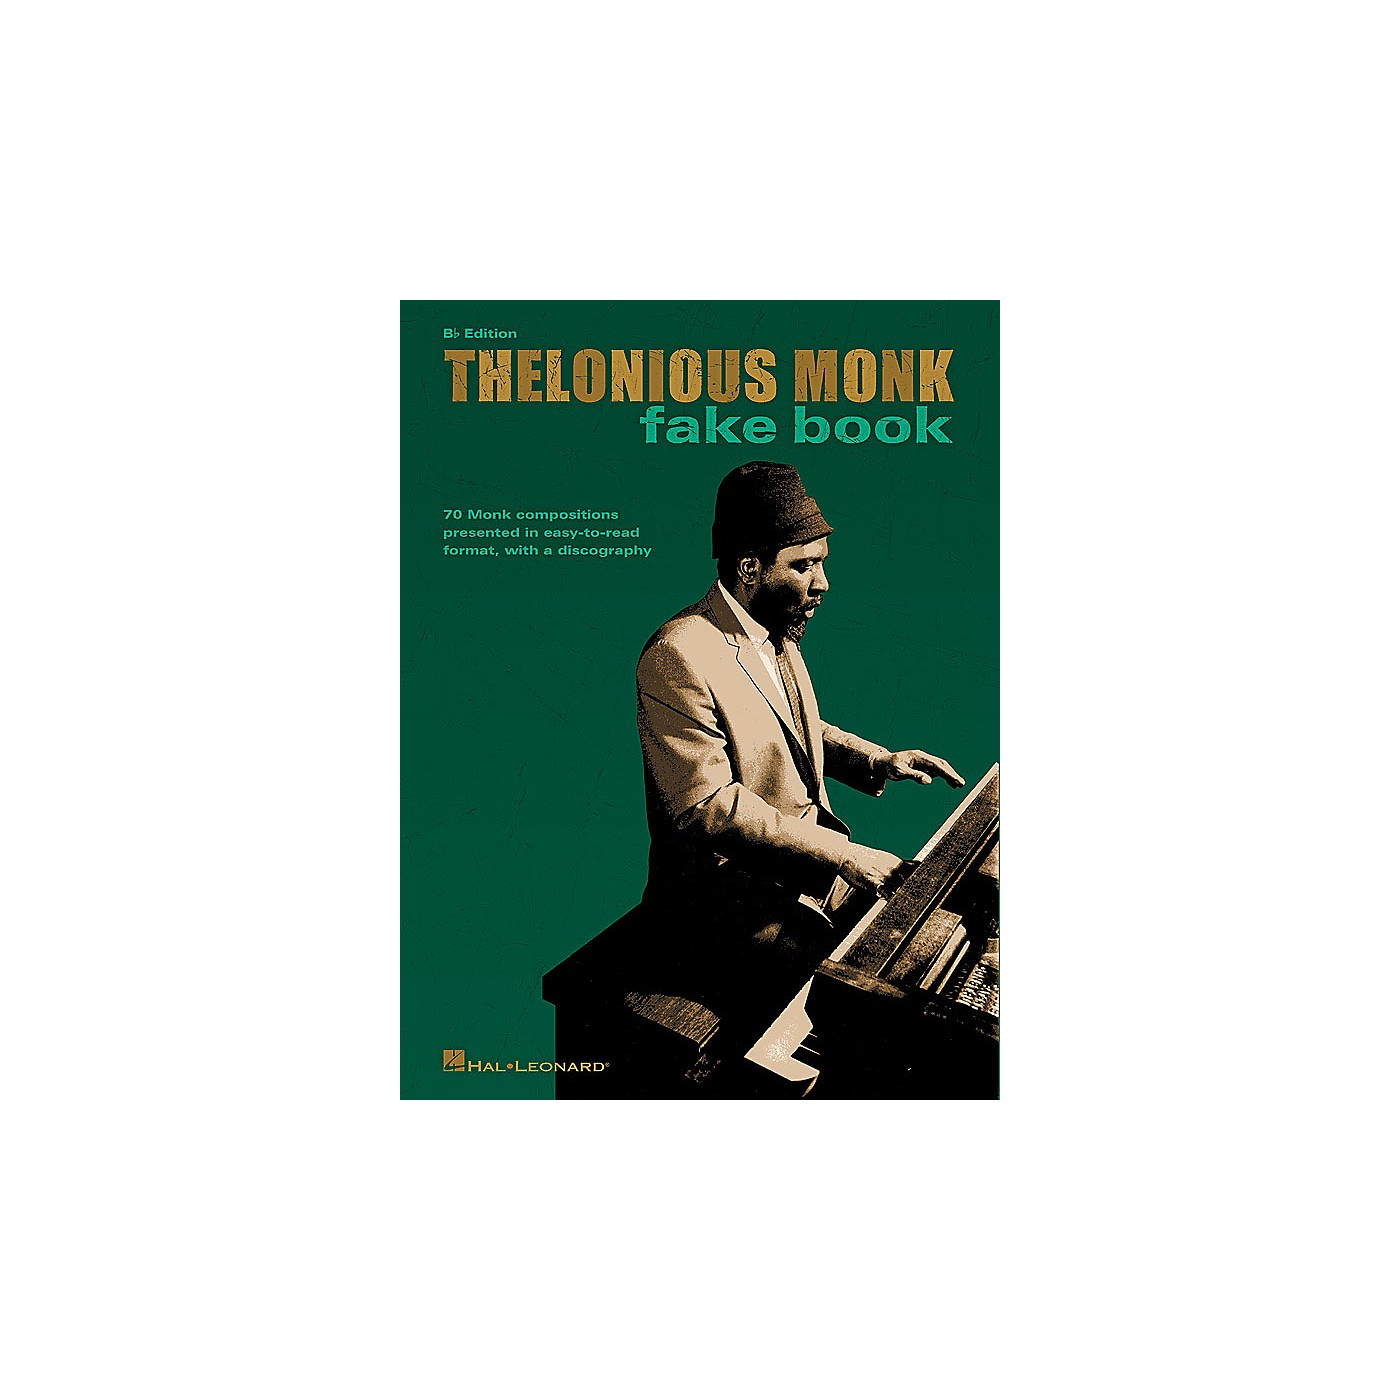 Hal Leonard Thelonious Monk Fake Book (B-flat Edition) Artist Books Series Softcover Performed by Thelonious Monk thumbnail